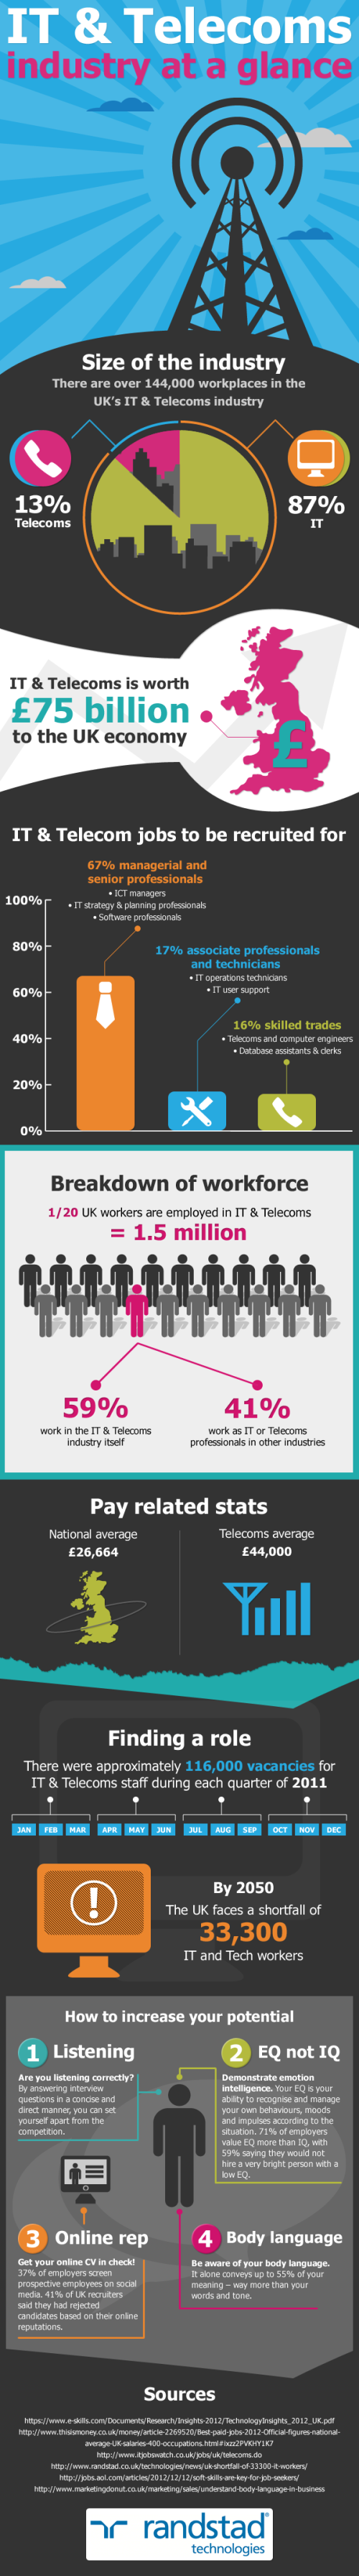 UK IT And Telecoms Industry At A Glance - Infographic